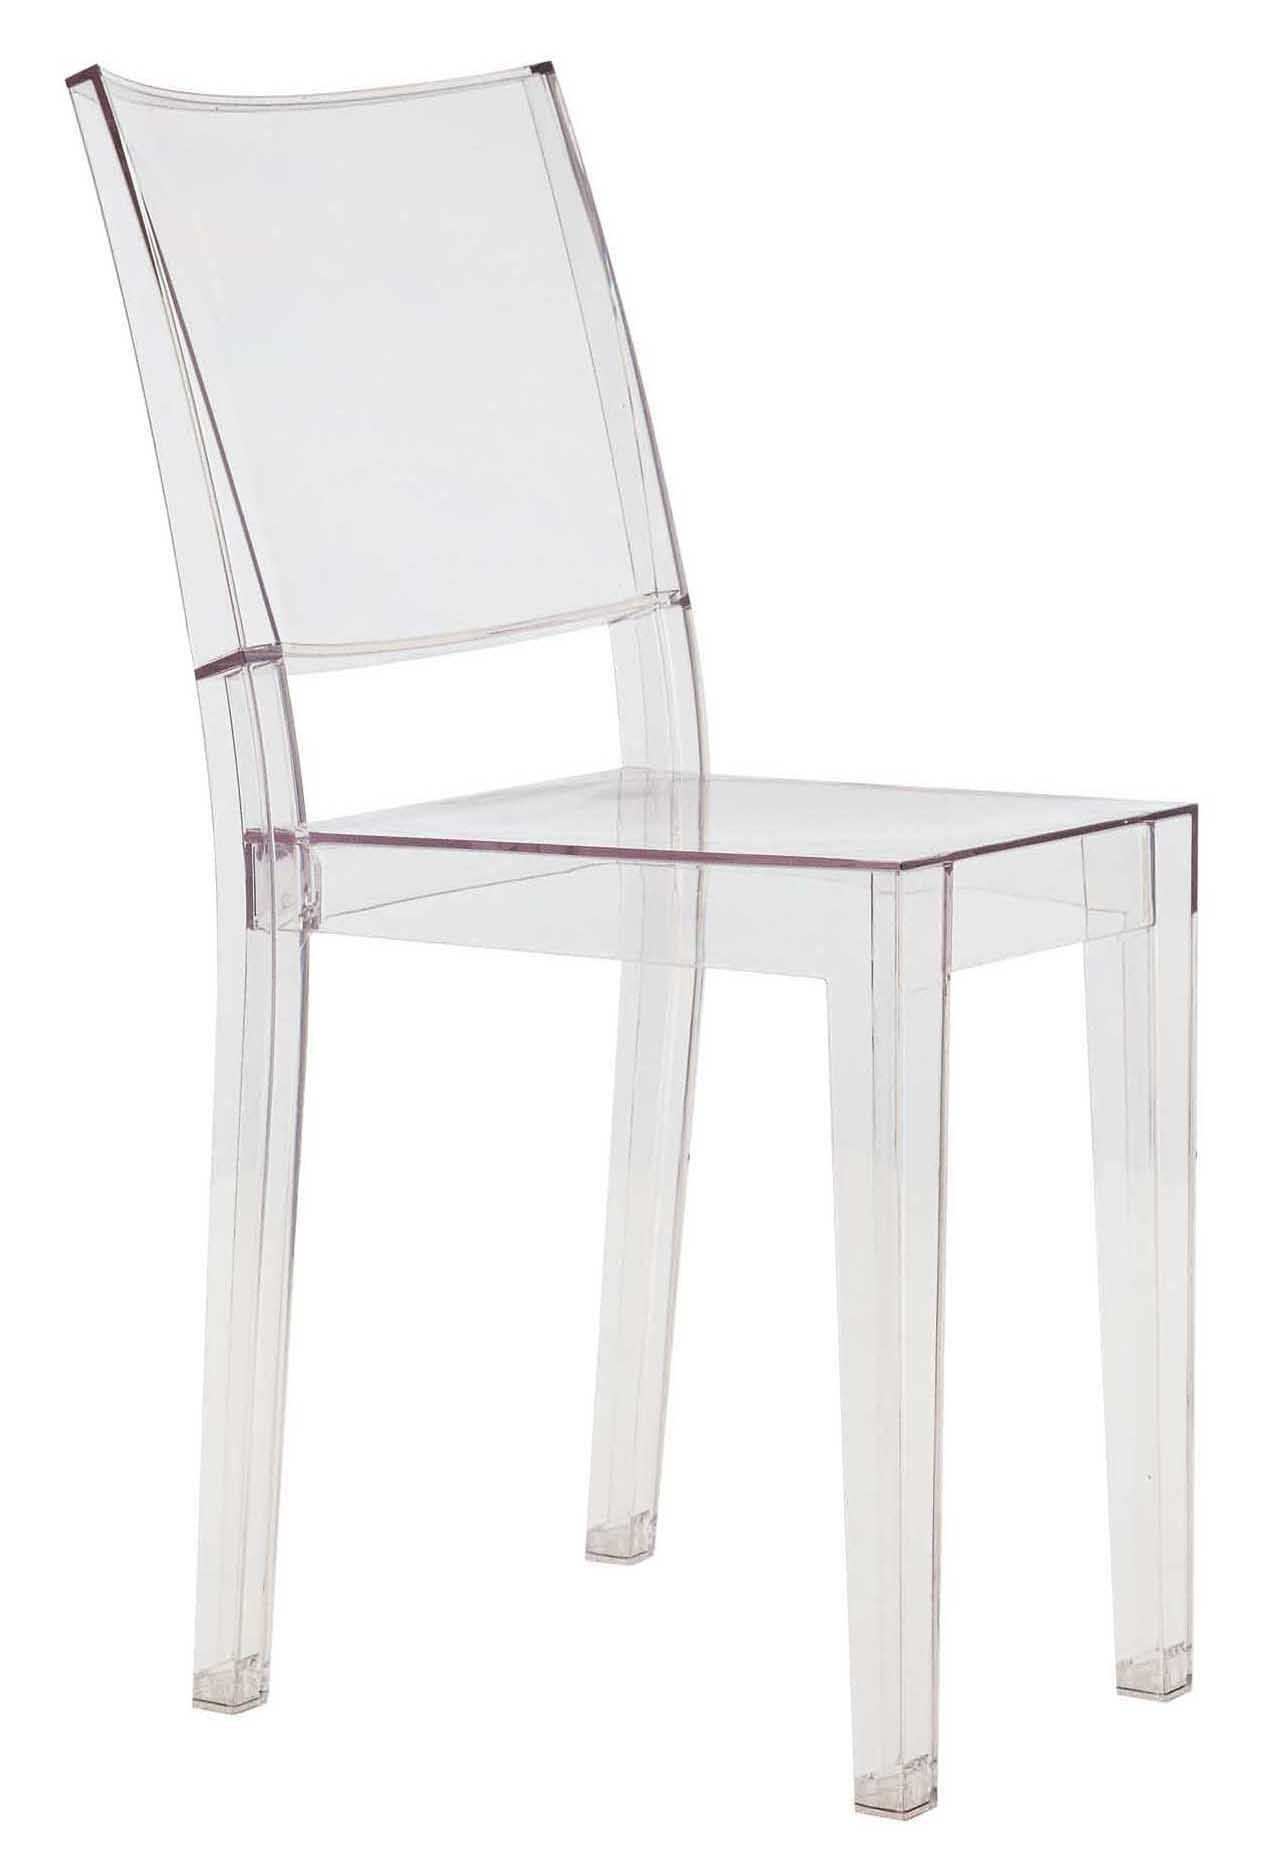 La marie stacking chair transparent polycarbonate clear by kartell - Chaise leroy merlin transparente ...